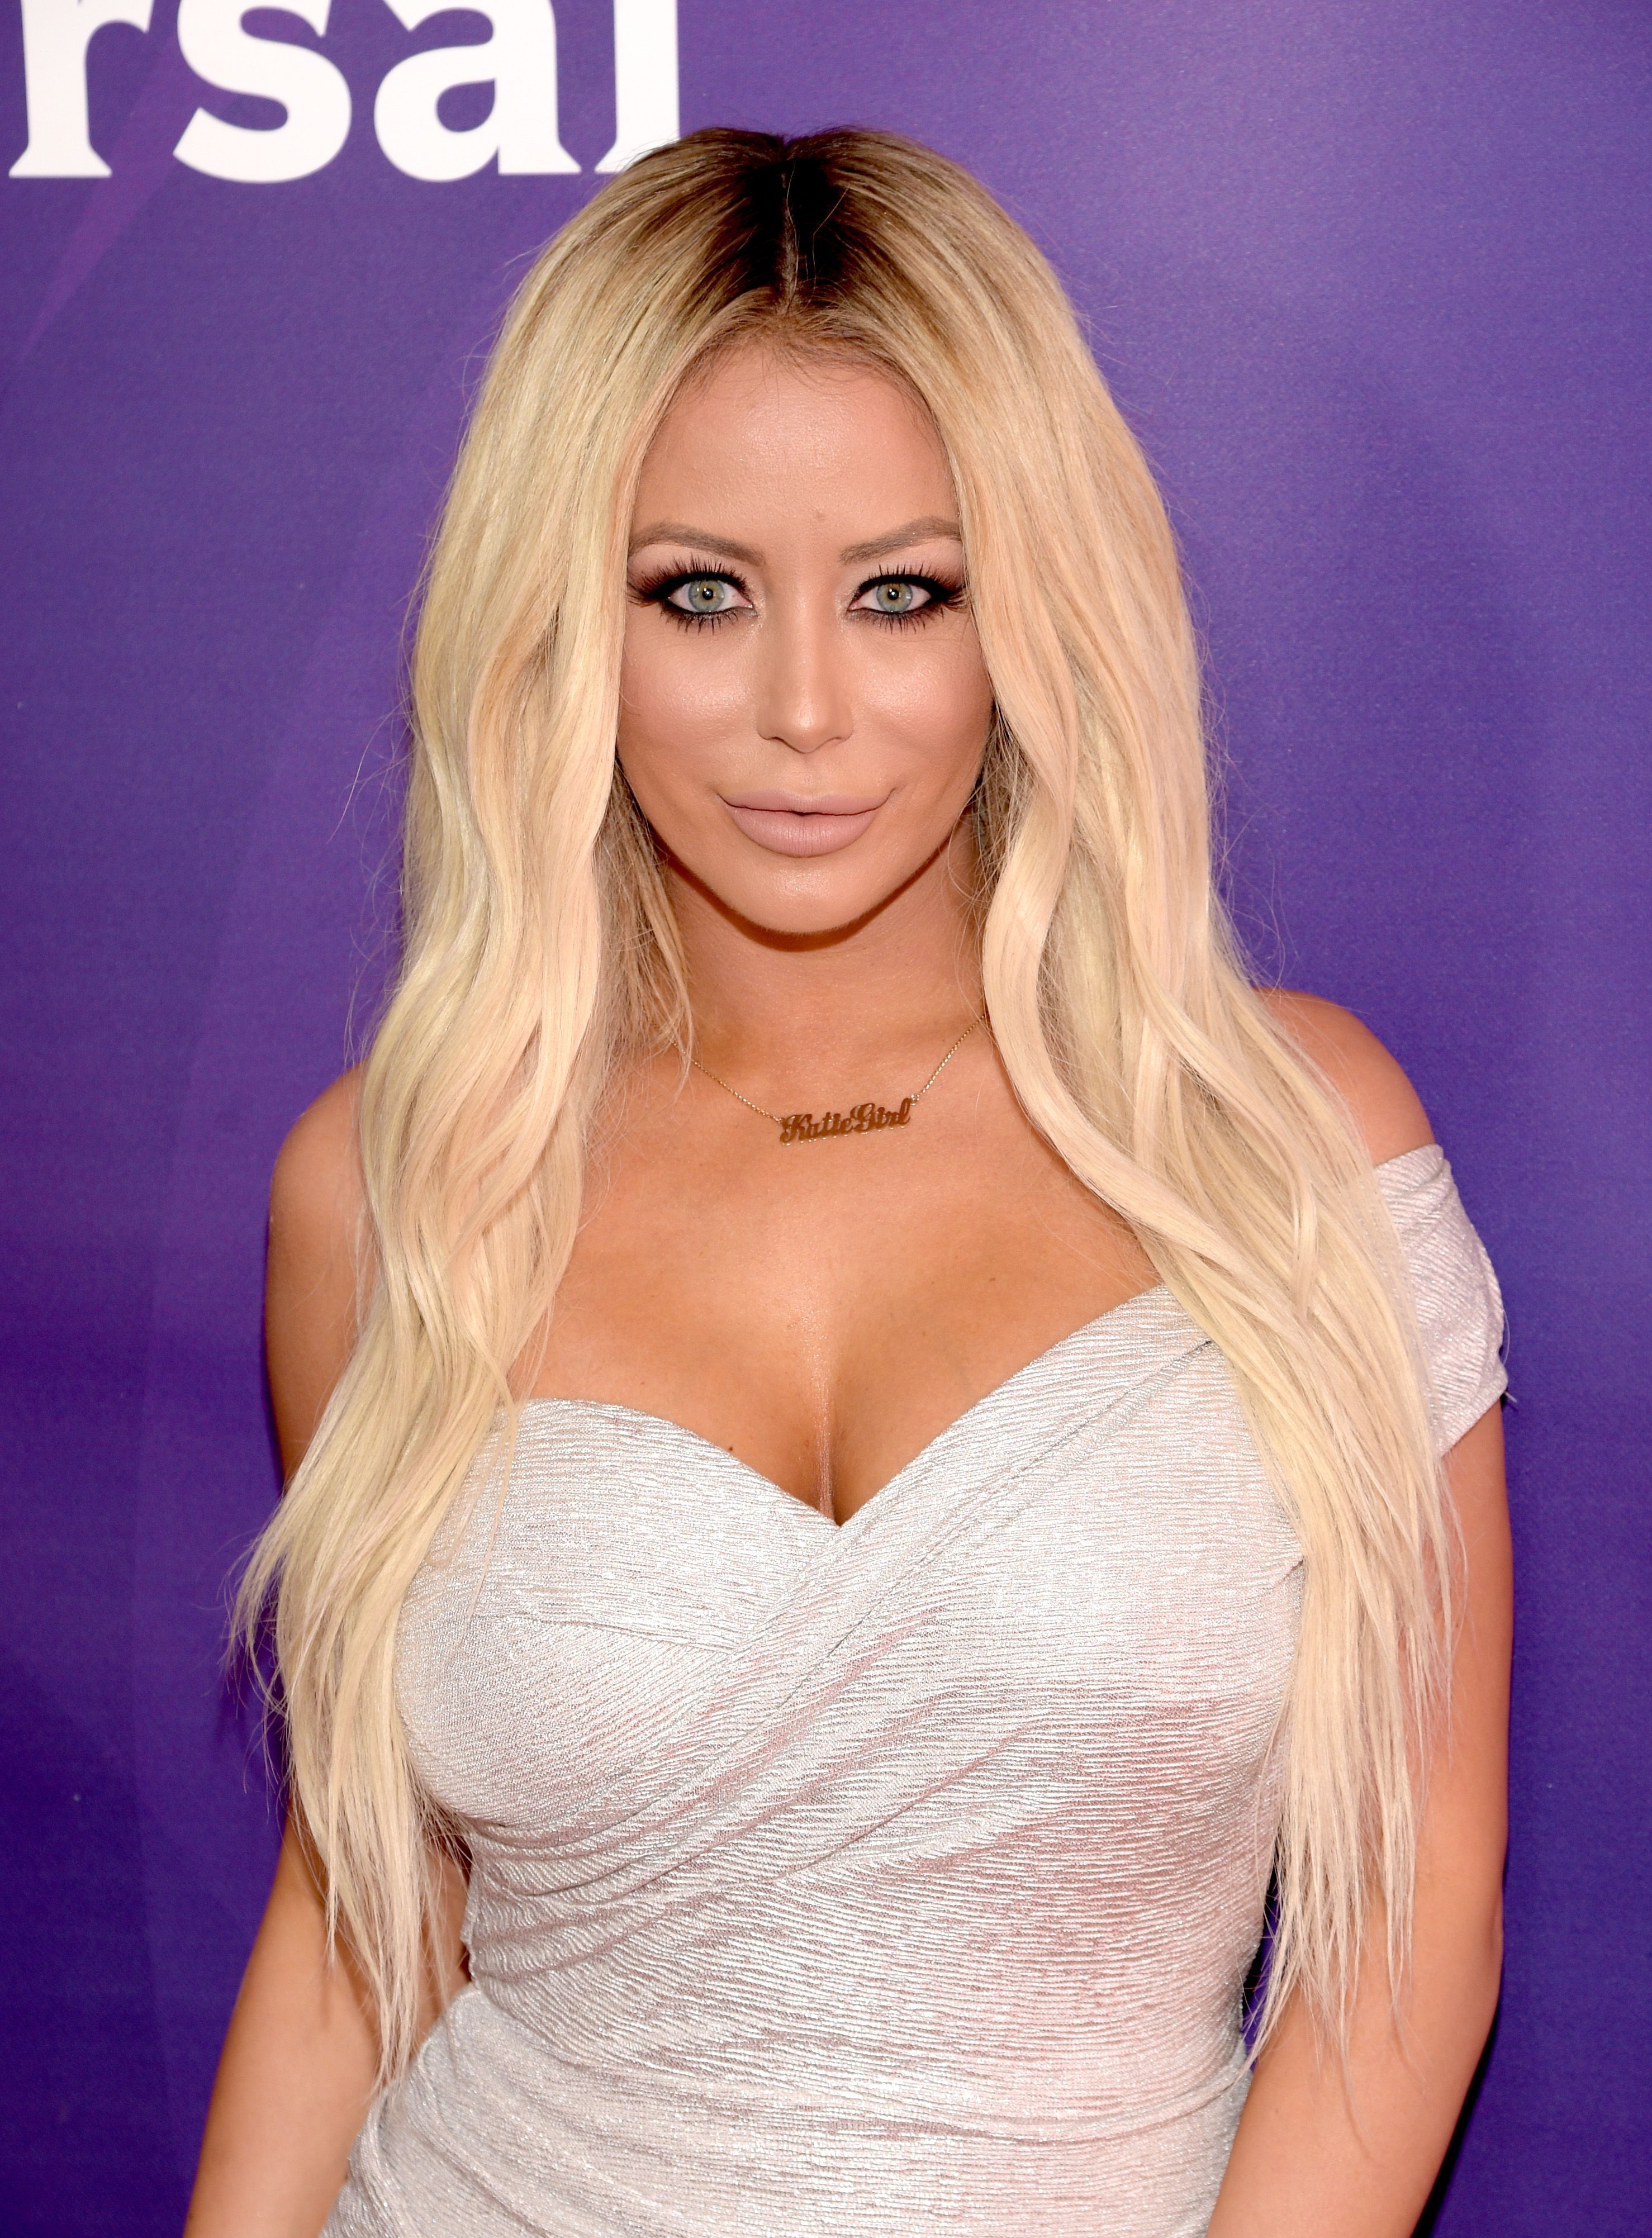 Aubrey O'Day attends the 2016 NBCUniversal Summer Press Day at Four Seasons Hotel Westlake Village on April 1, 2016 in Westlake Village, California. | Source: Getty Images